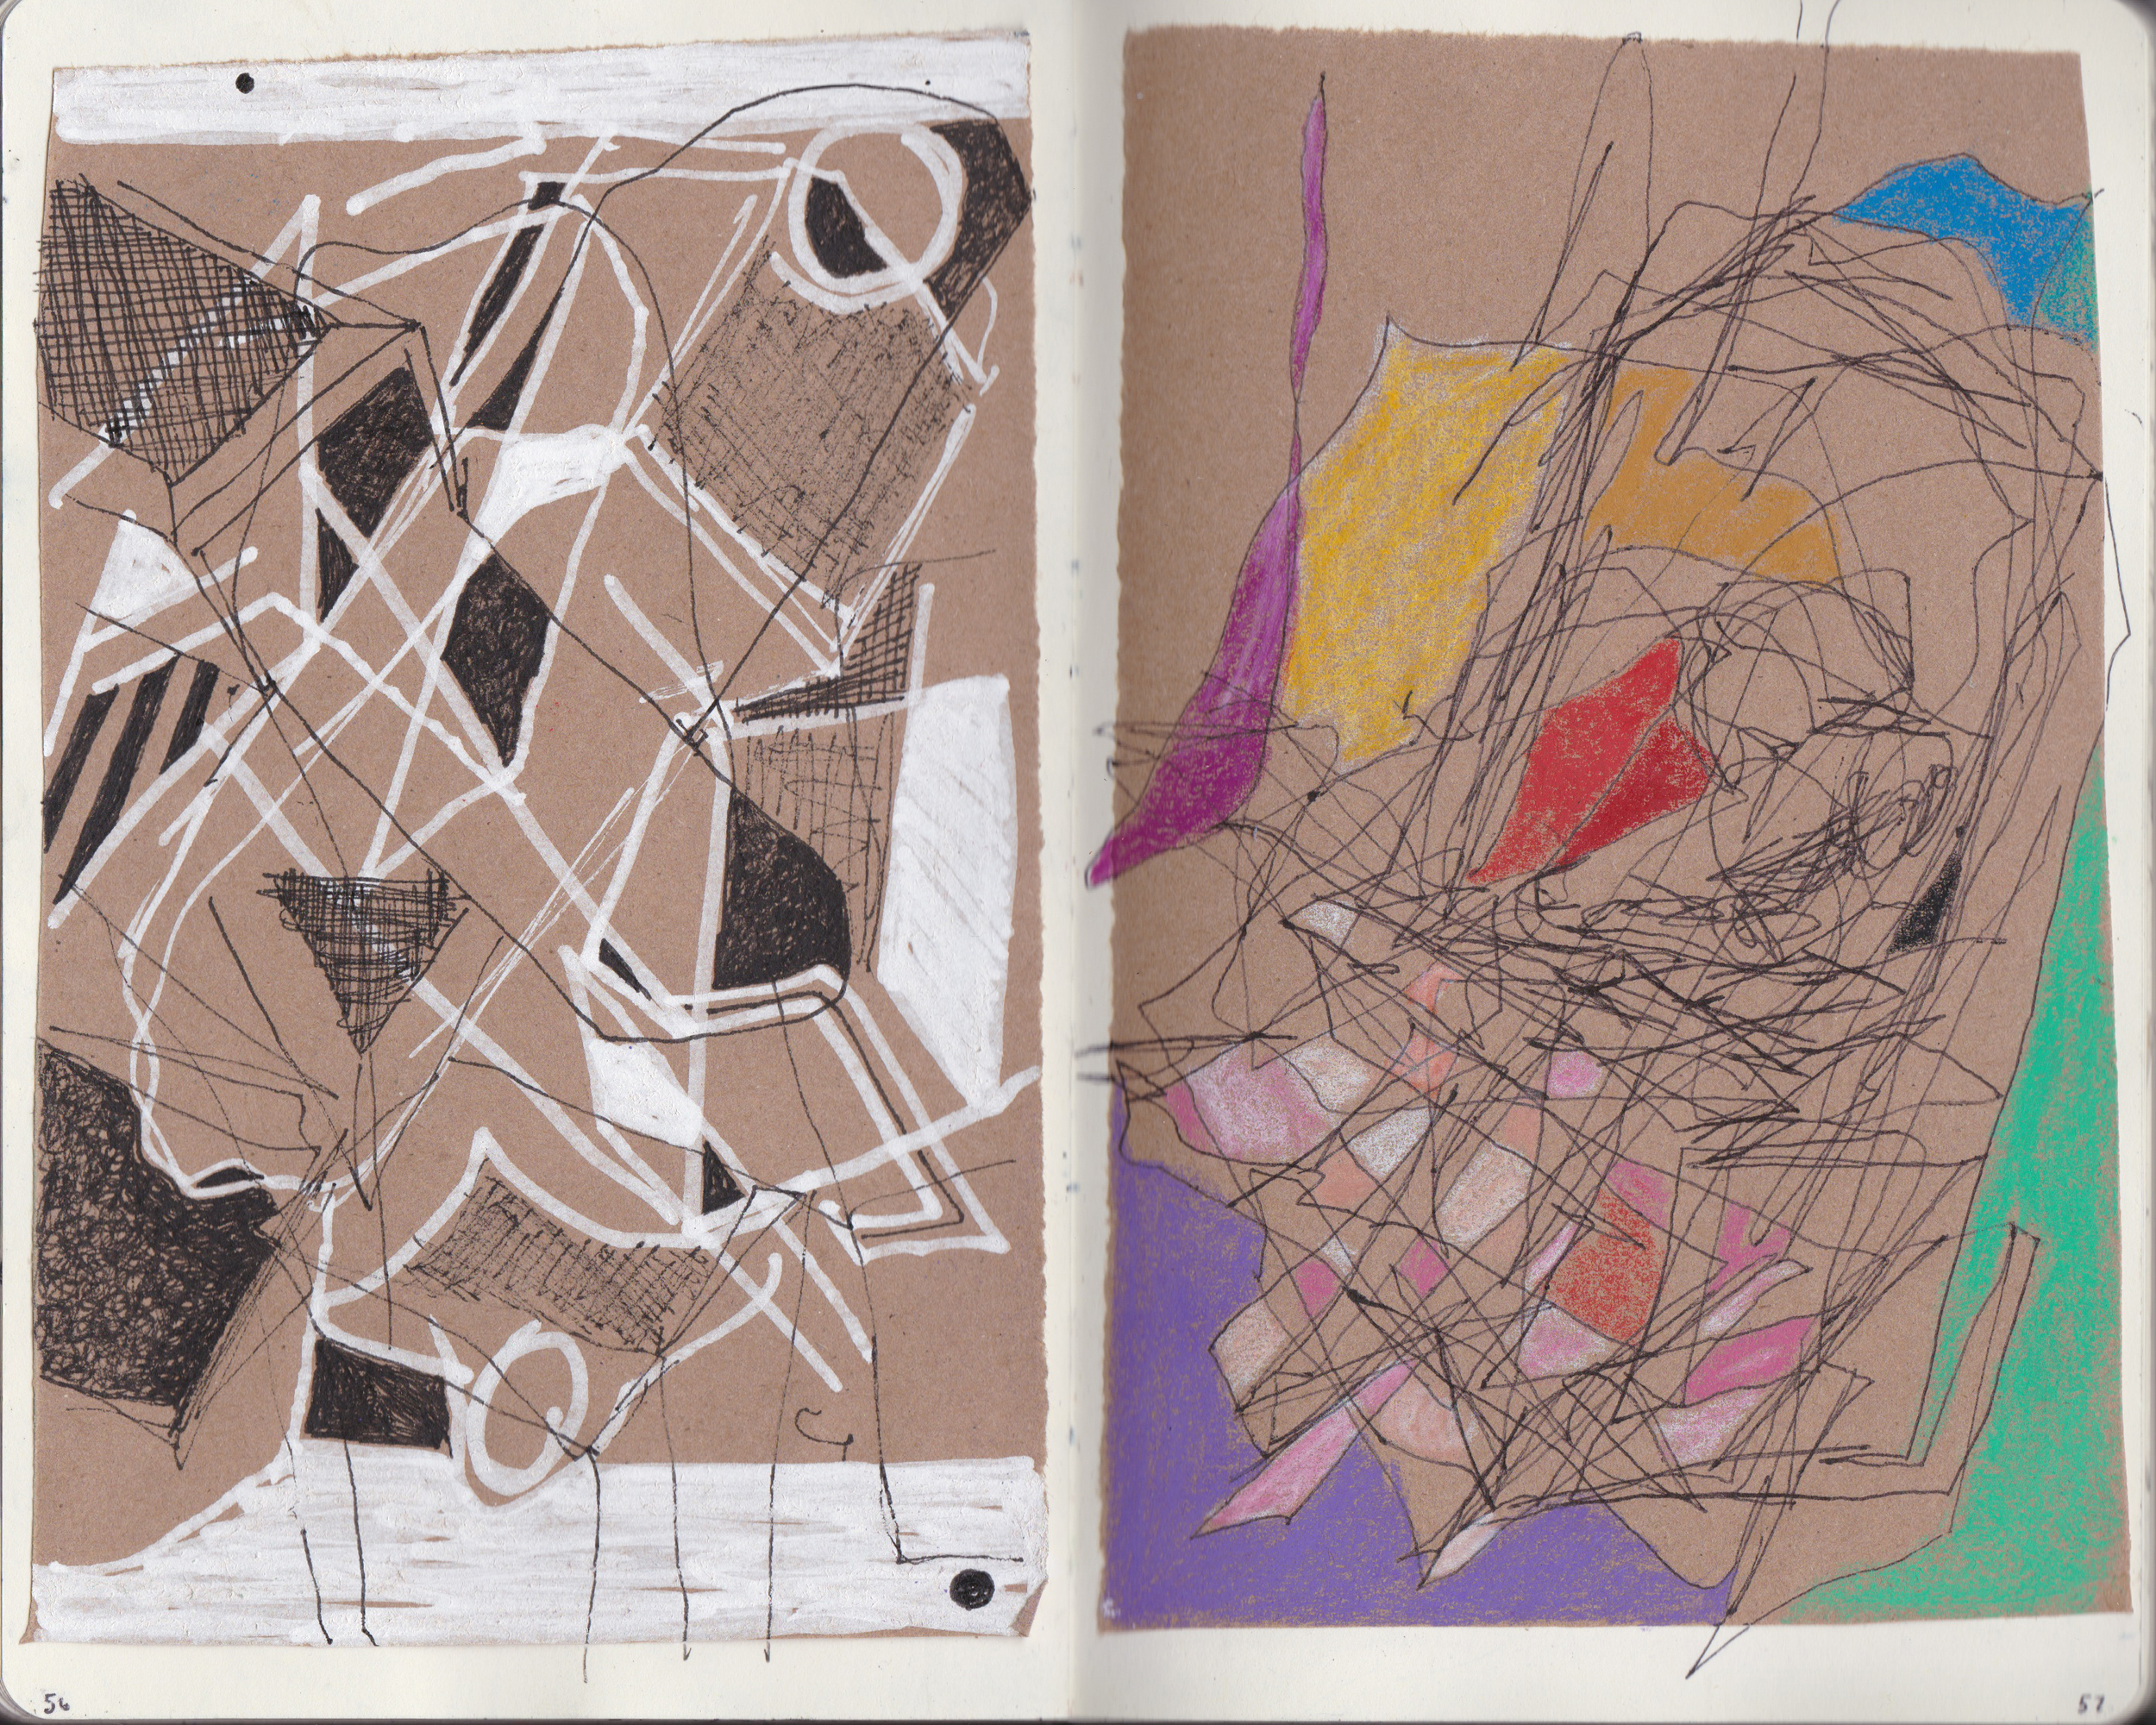 Selections From a Series of 100 Drawings